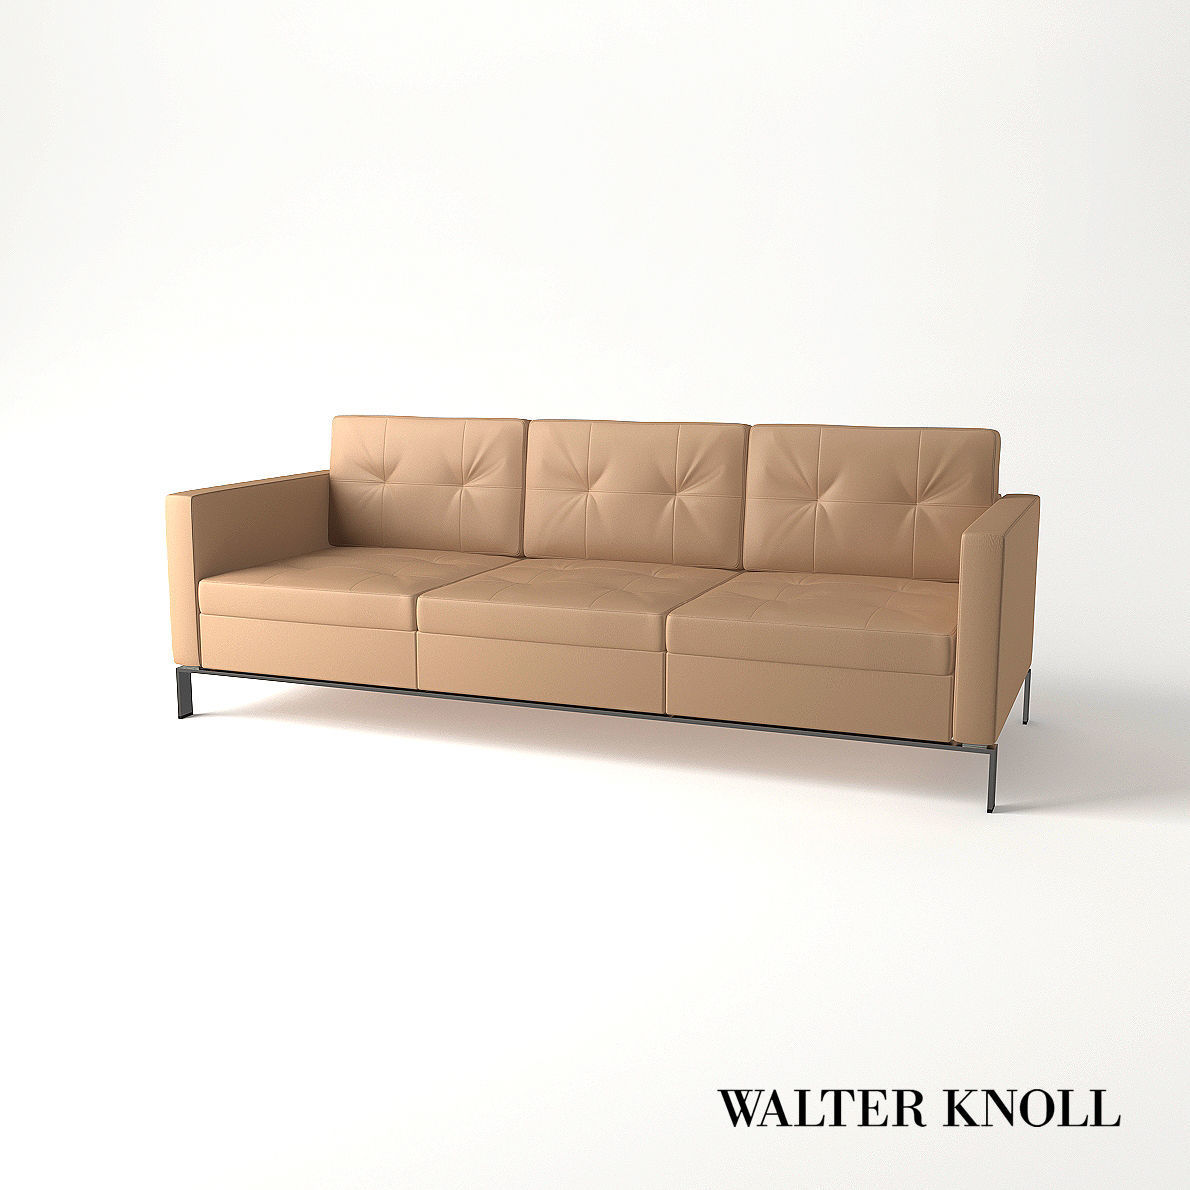 Walter Knoll Sofa Knoll Couch